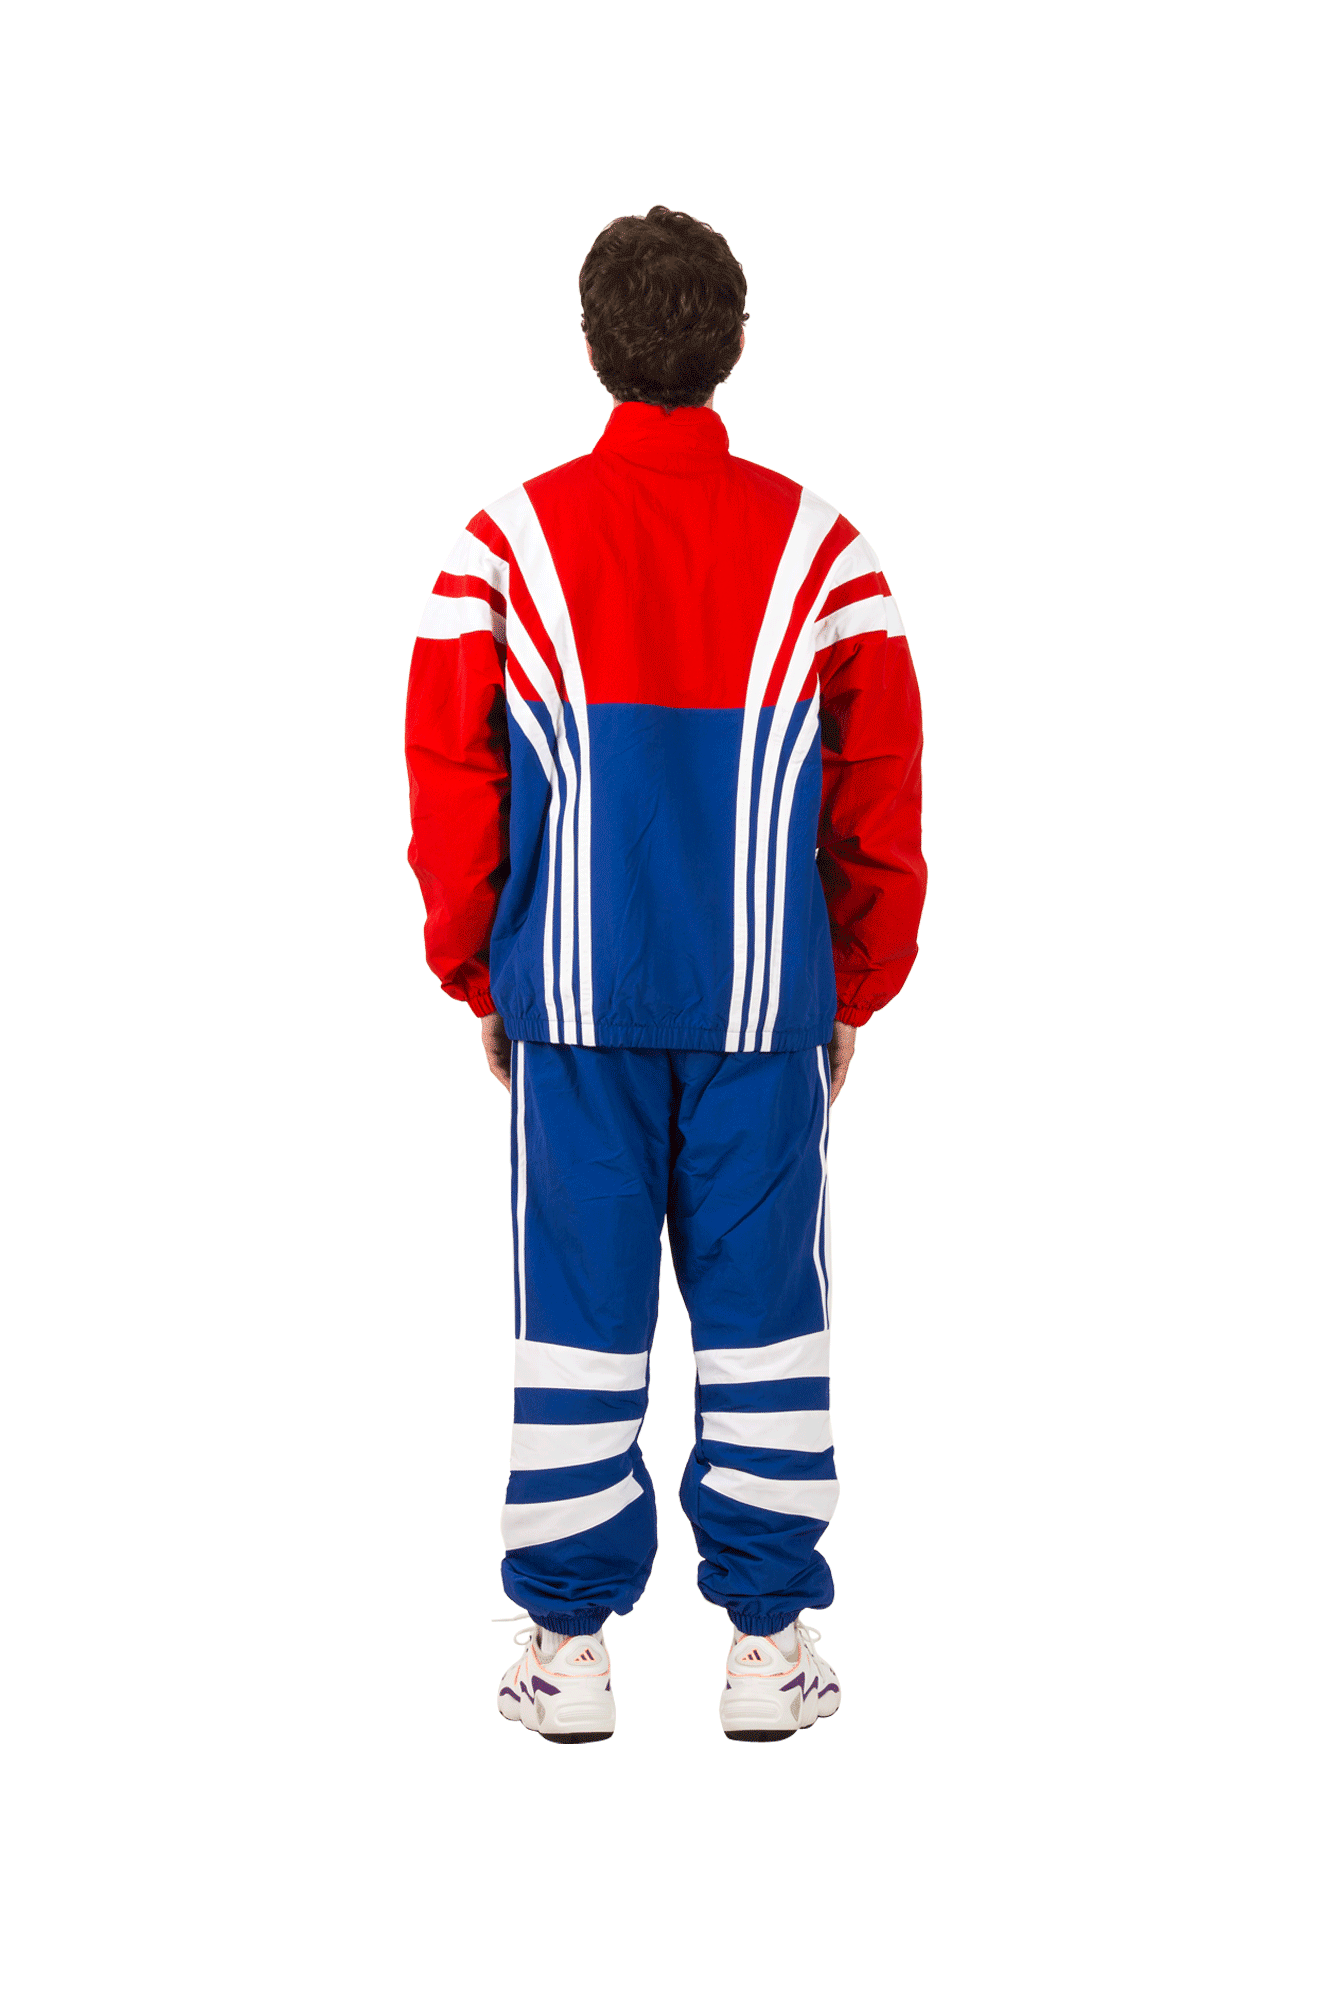 Adidas Originals Felpe BLNT 96 TT Jacket Rosso EE2338#000#Red#S - One Block Down